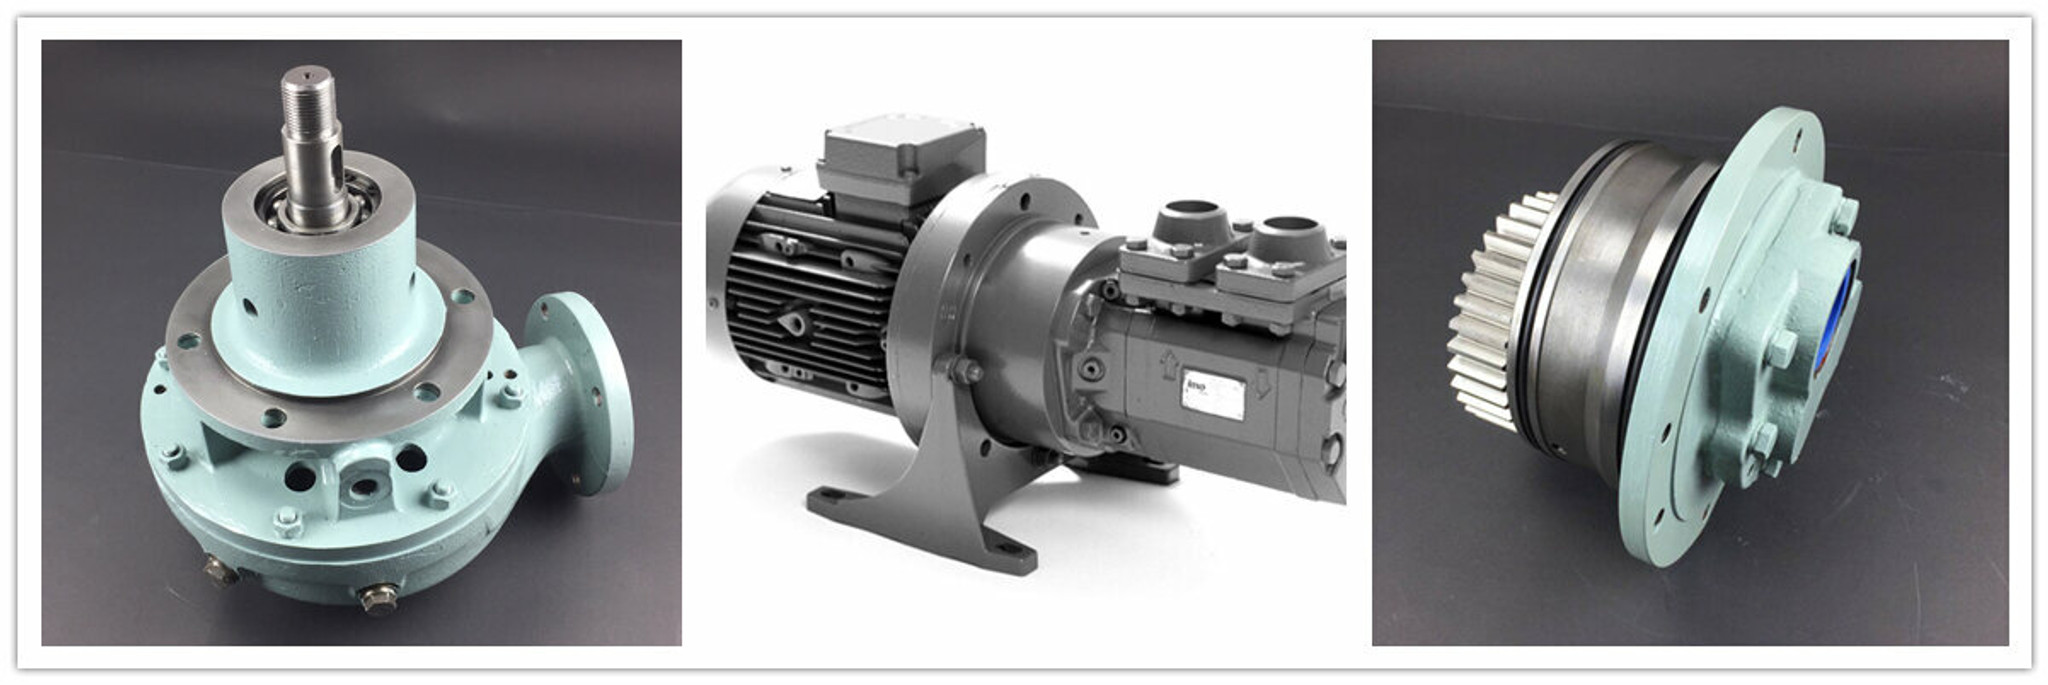 OIL PUMP AND WATER PUMPS